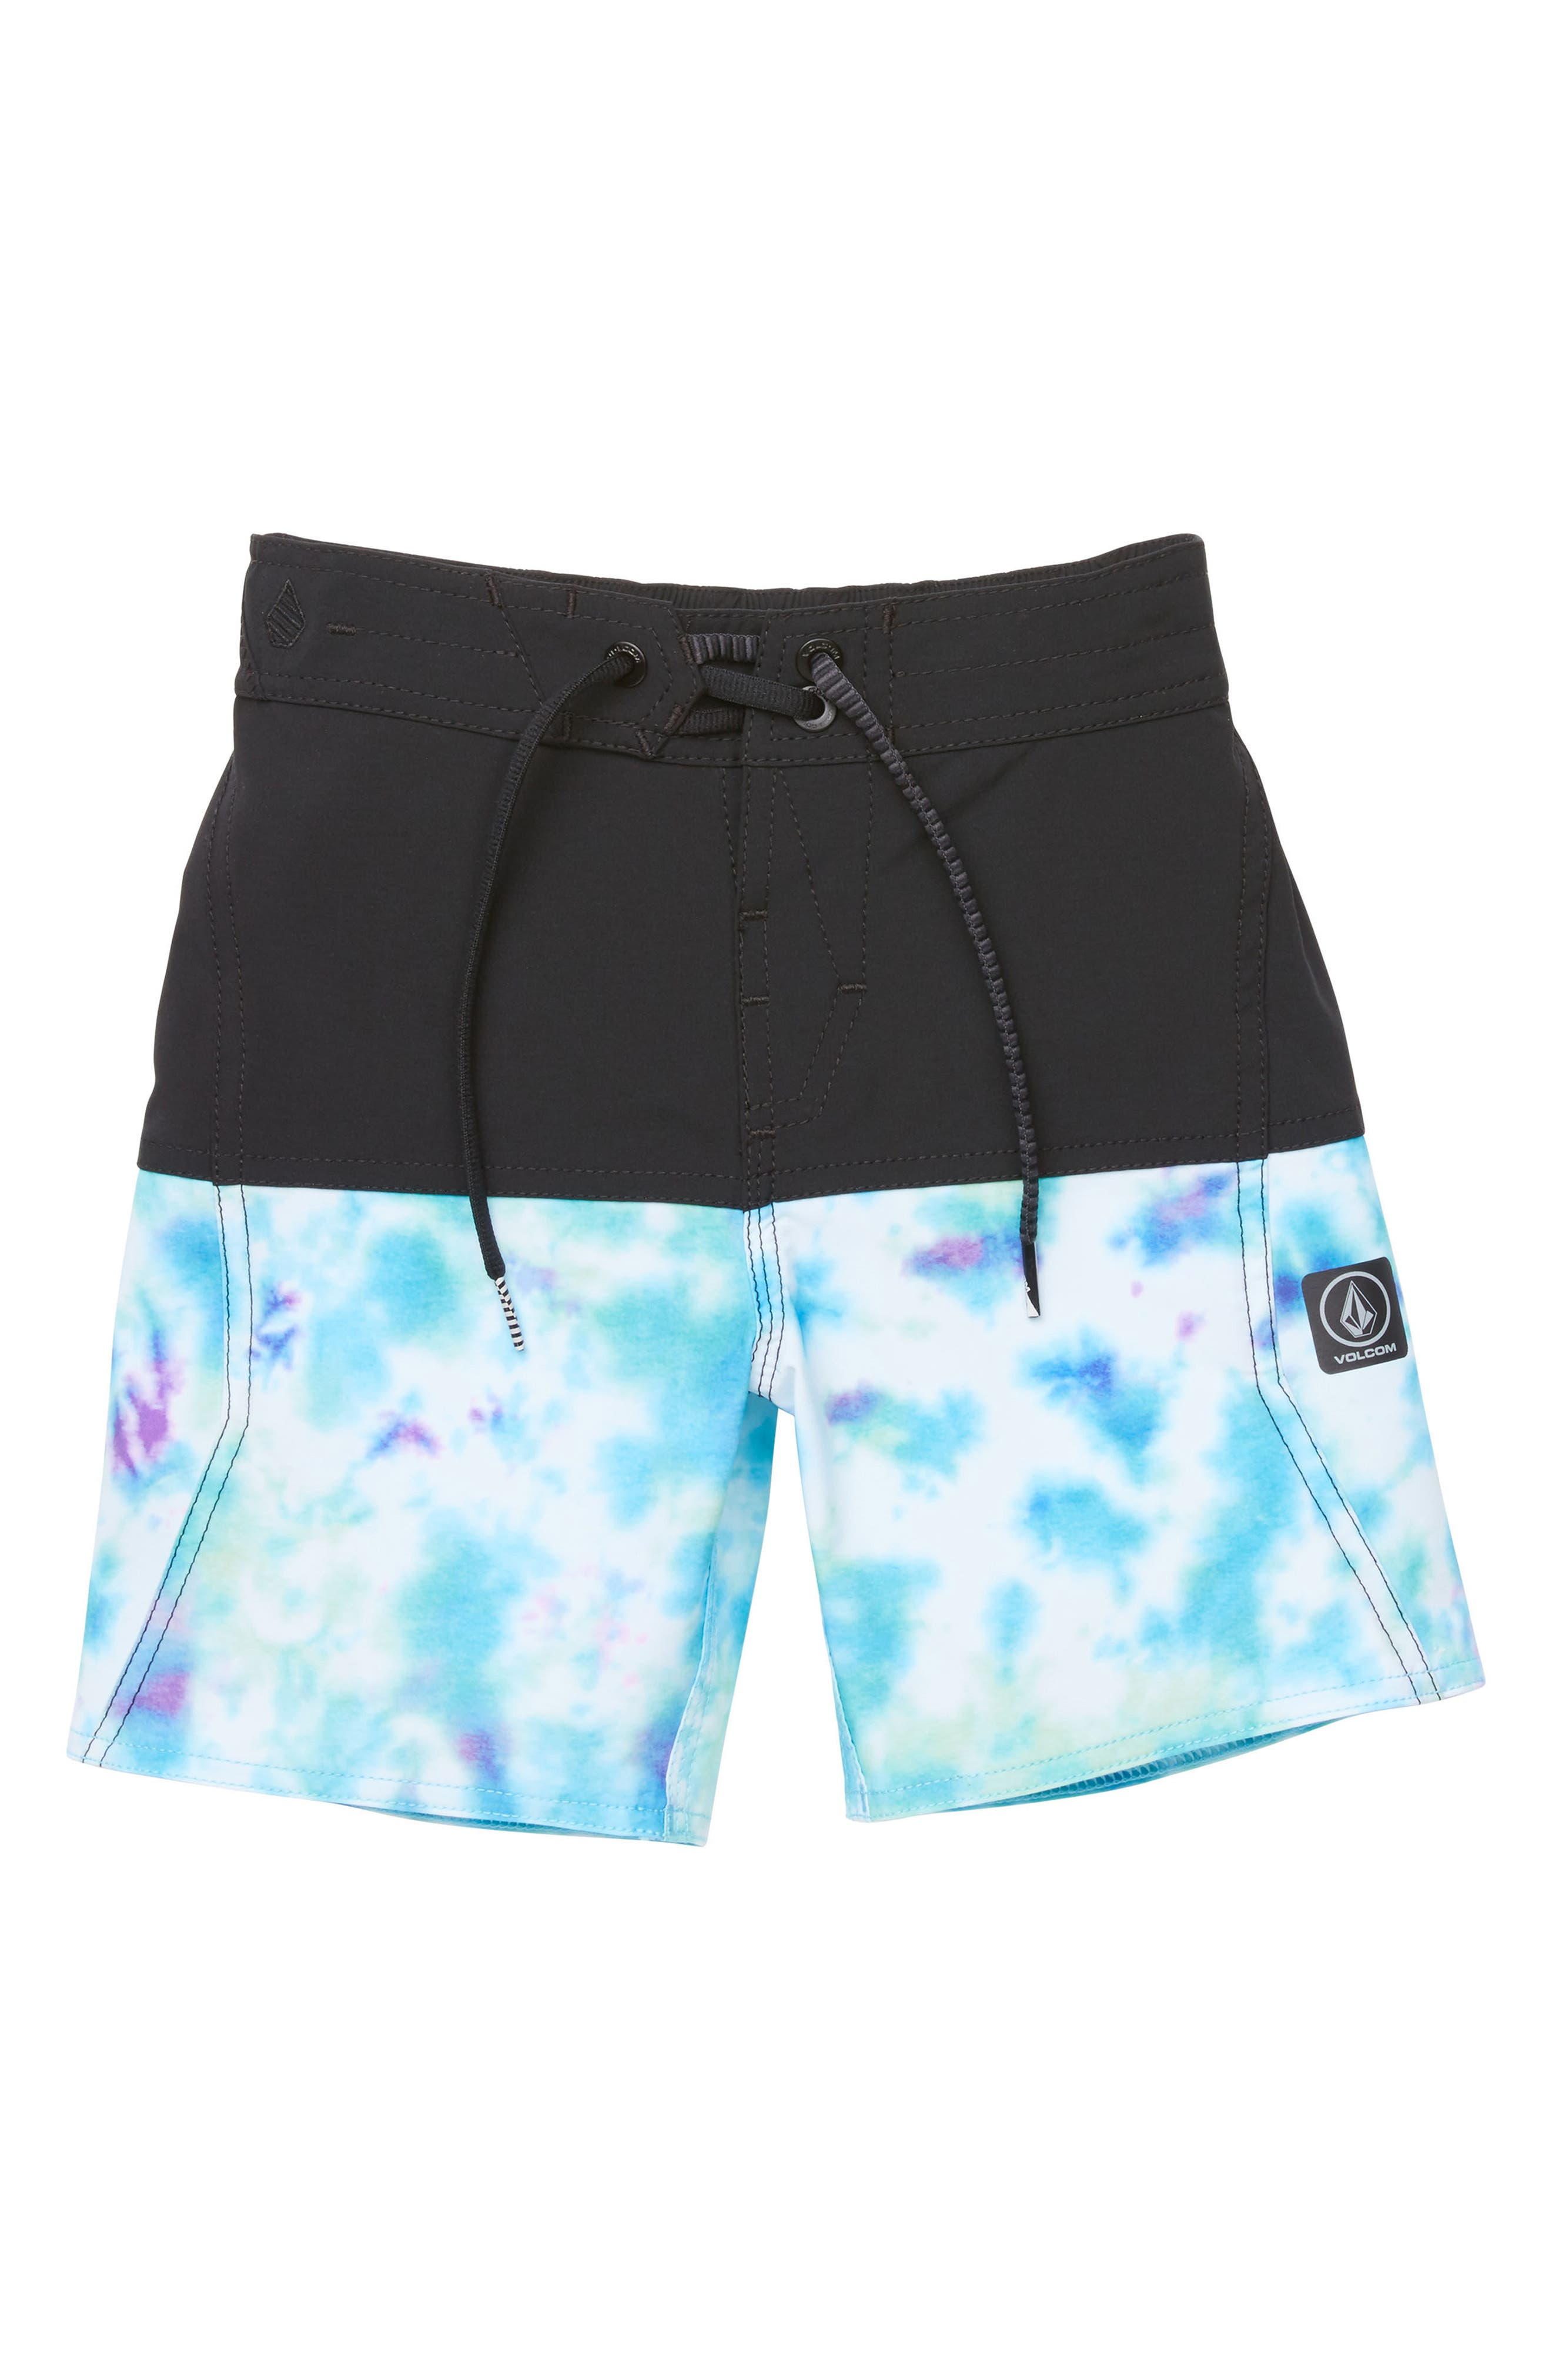 Vibes Board Shorts,                             Main thumbnail 1, color,                             Black Combo